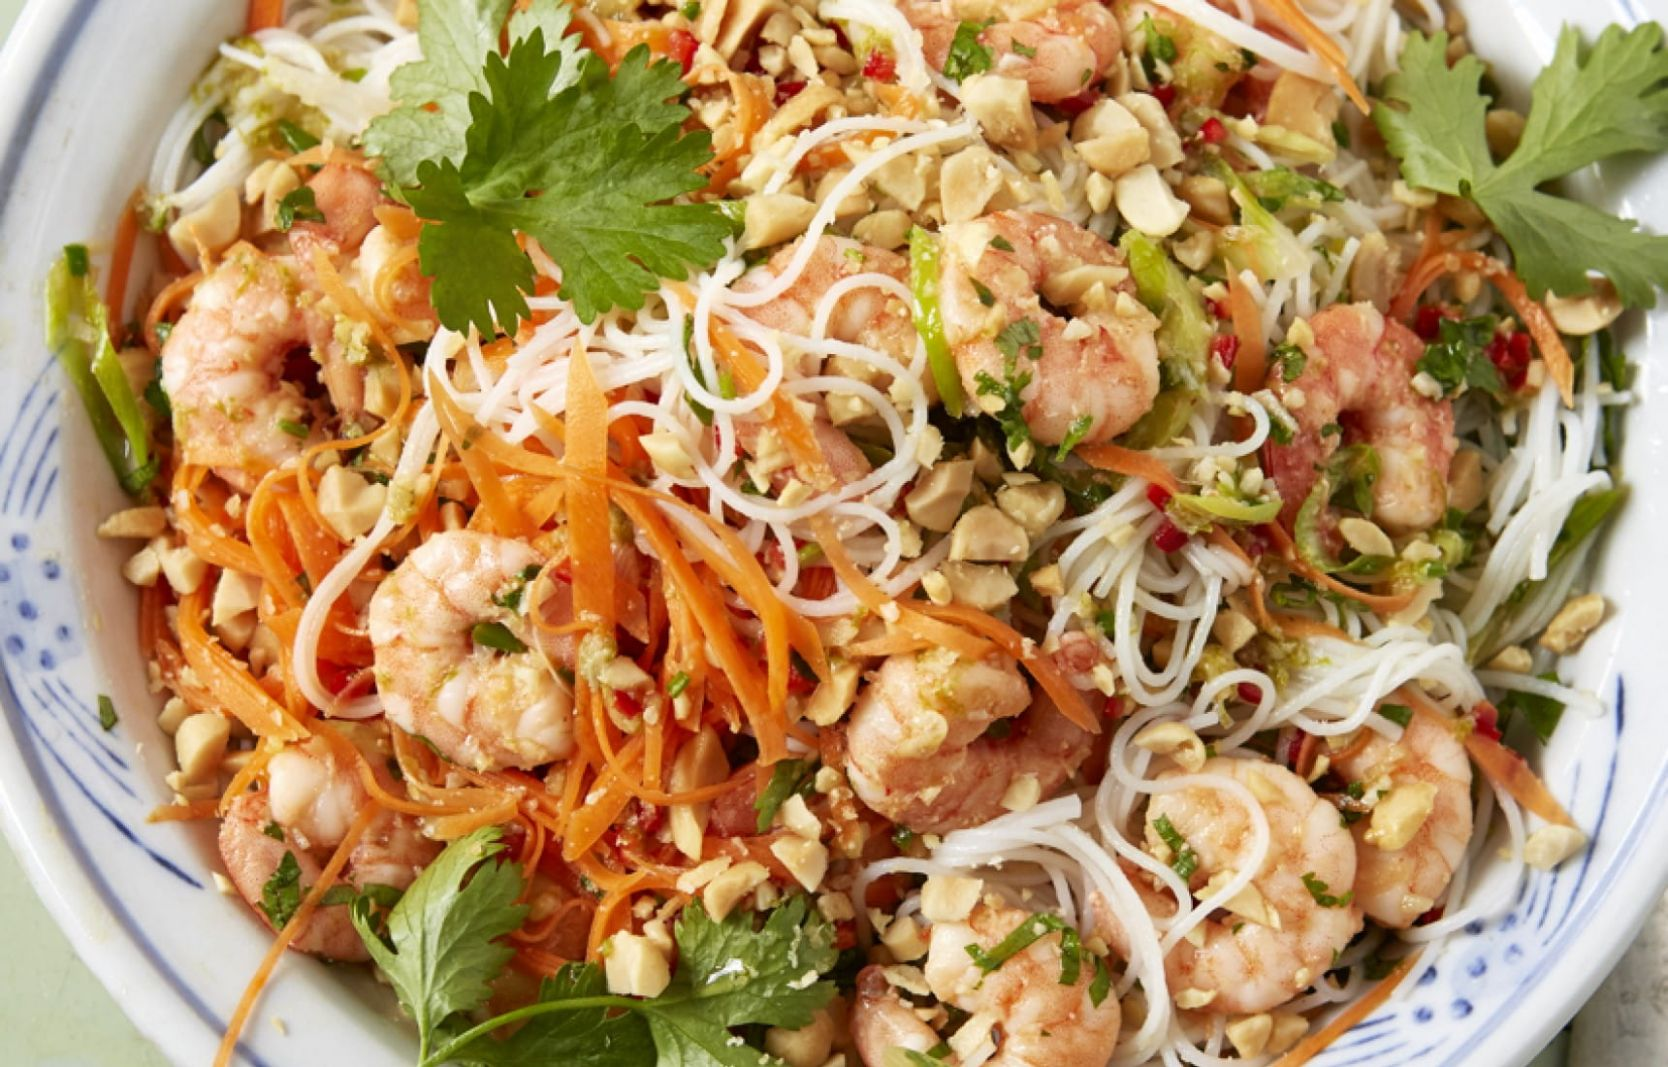 Prawn, lime, peanut and herb rice noodles | Matching Food & Wine - Recipes Rice Noodles Prawns